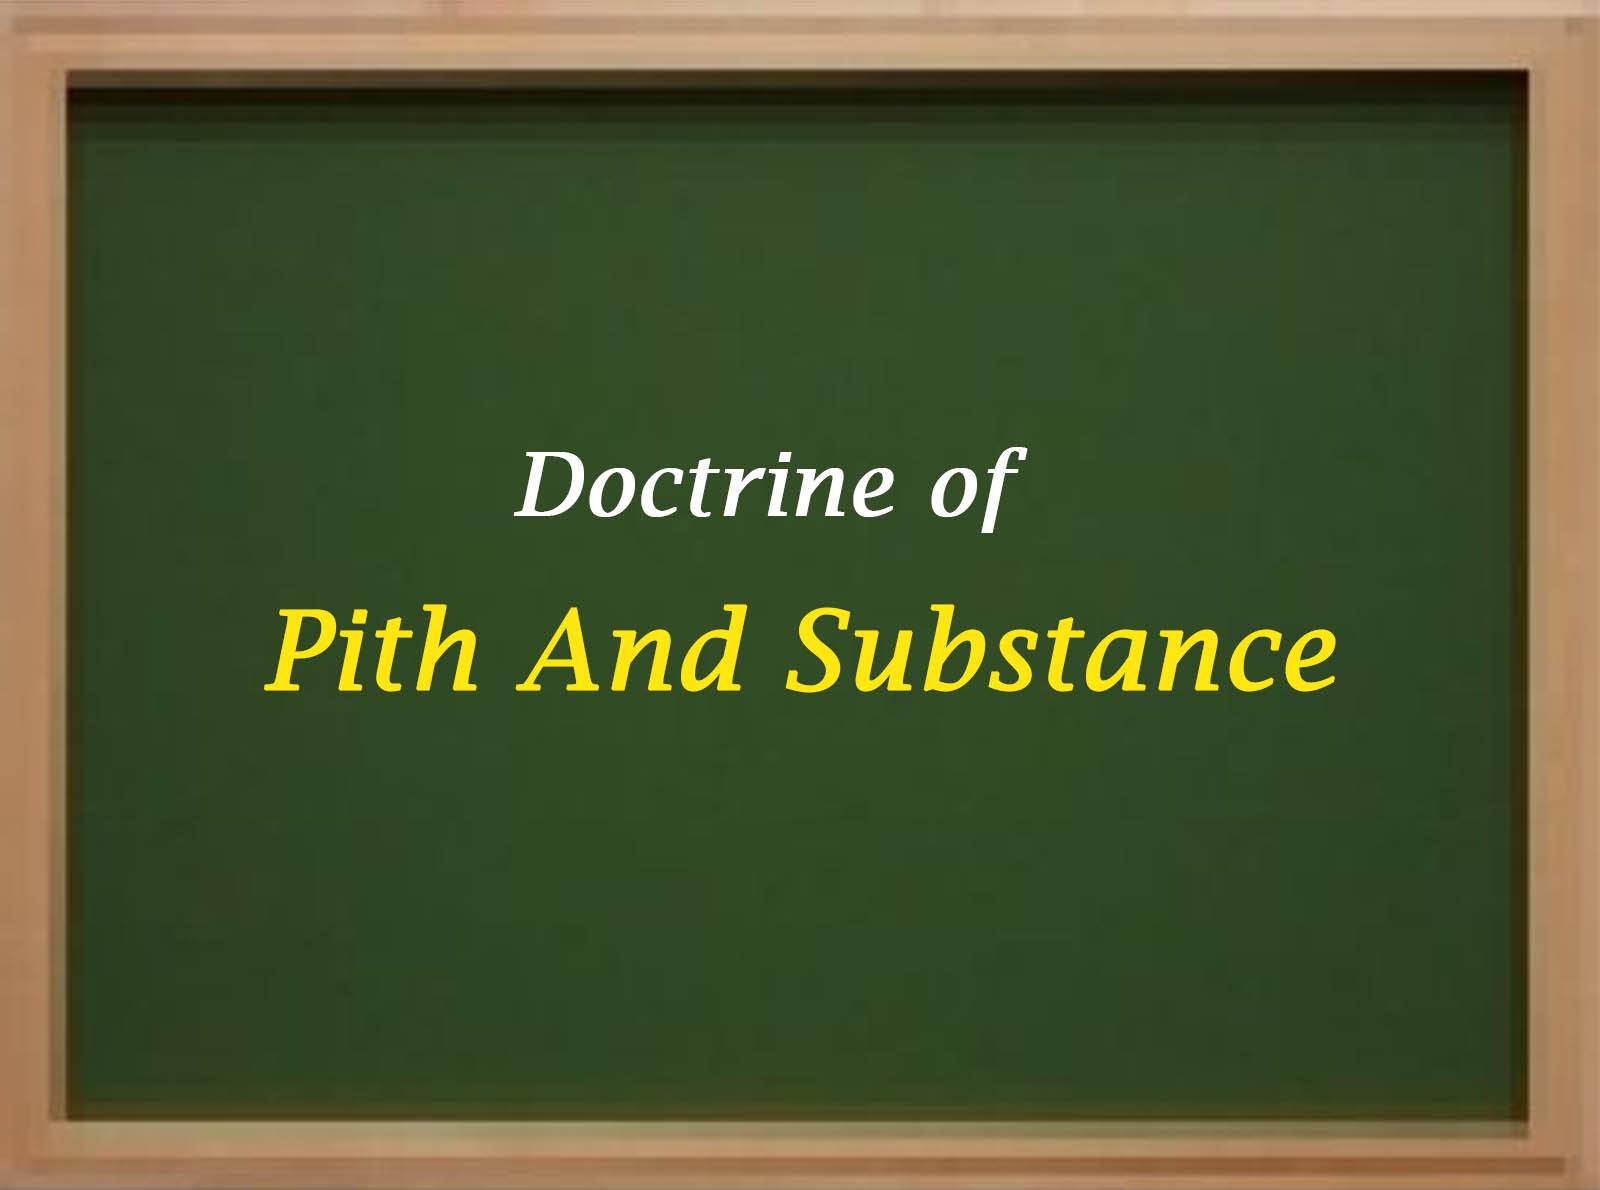 Doctrine of Pith and Substance - Article 246